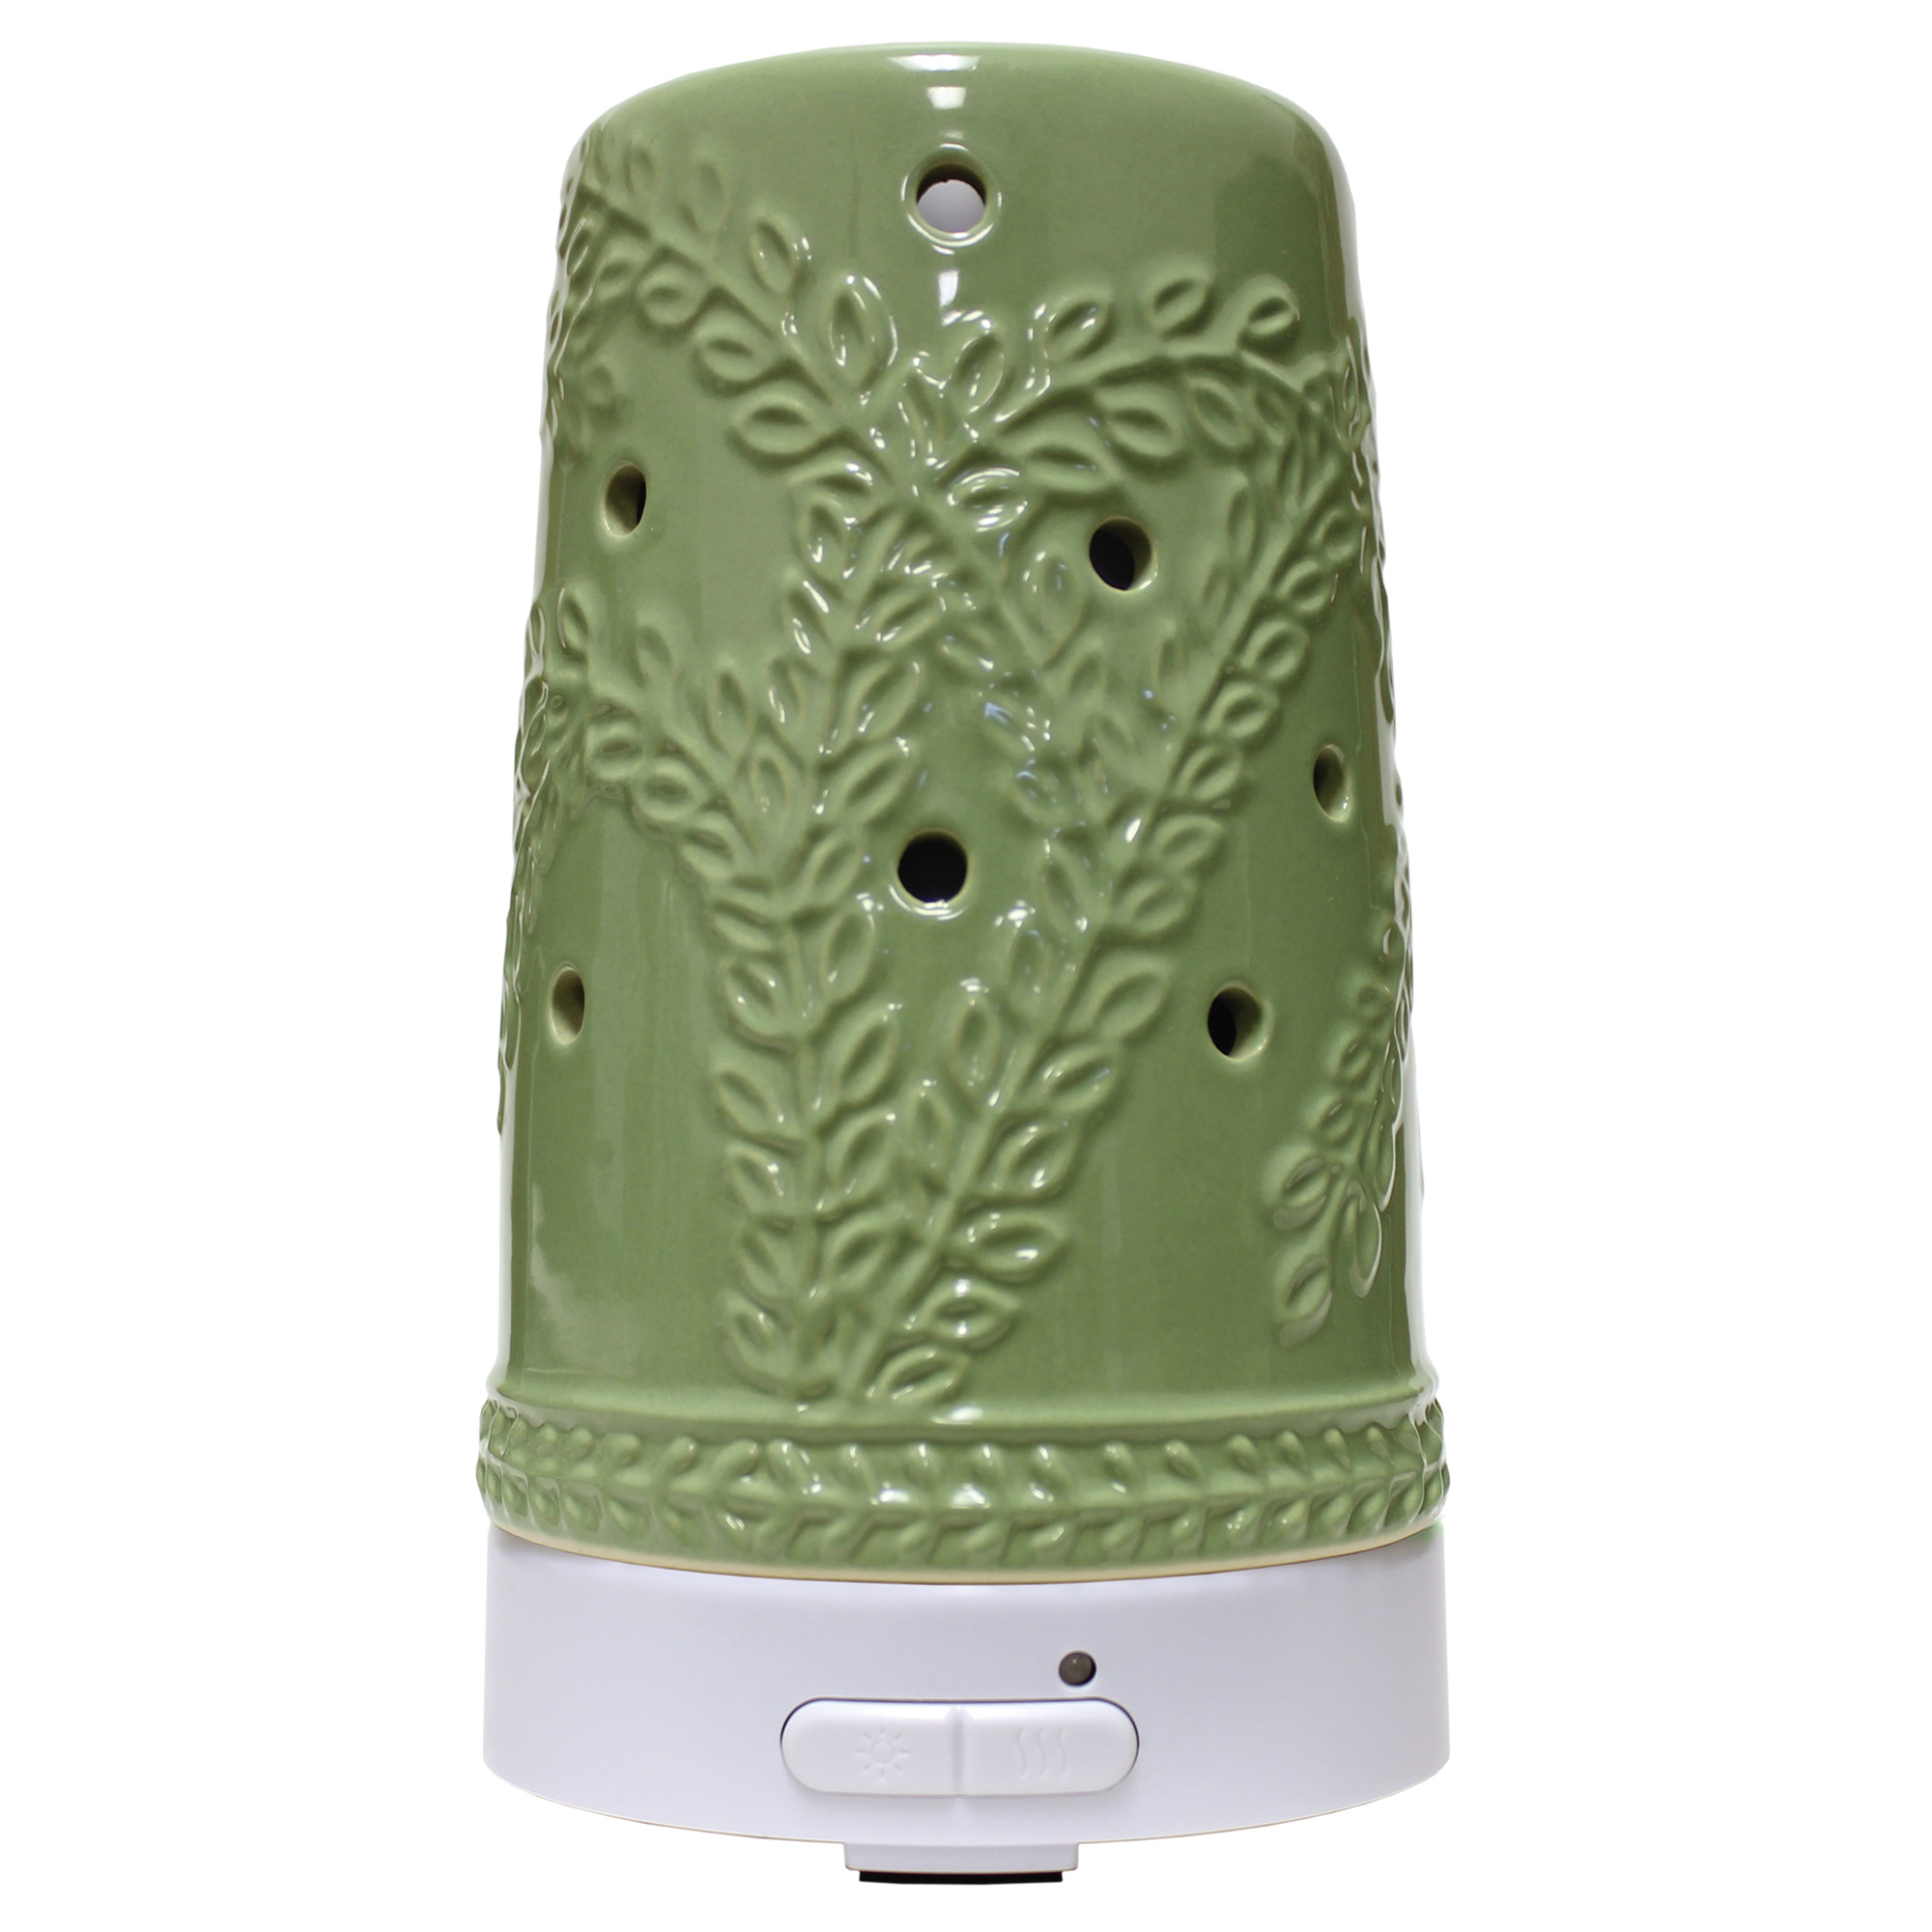 WILLOWING FERN ULTRASONIC OIL DIFFUSERUPC# 674623018065